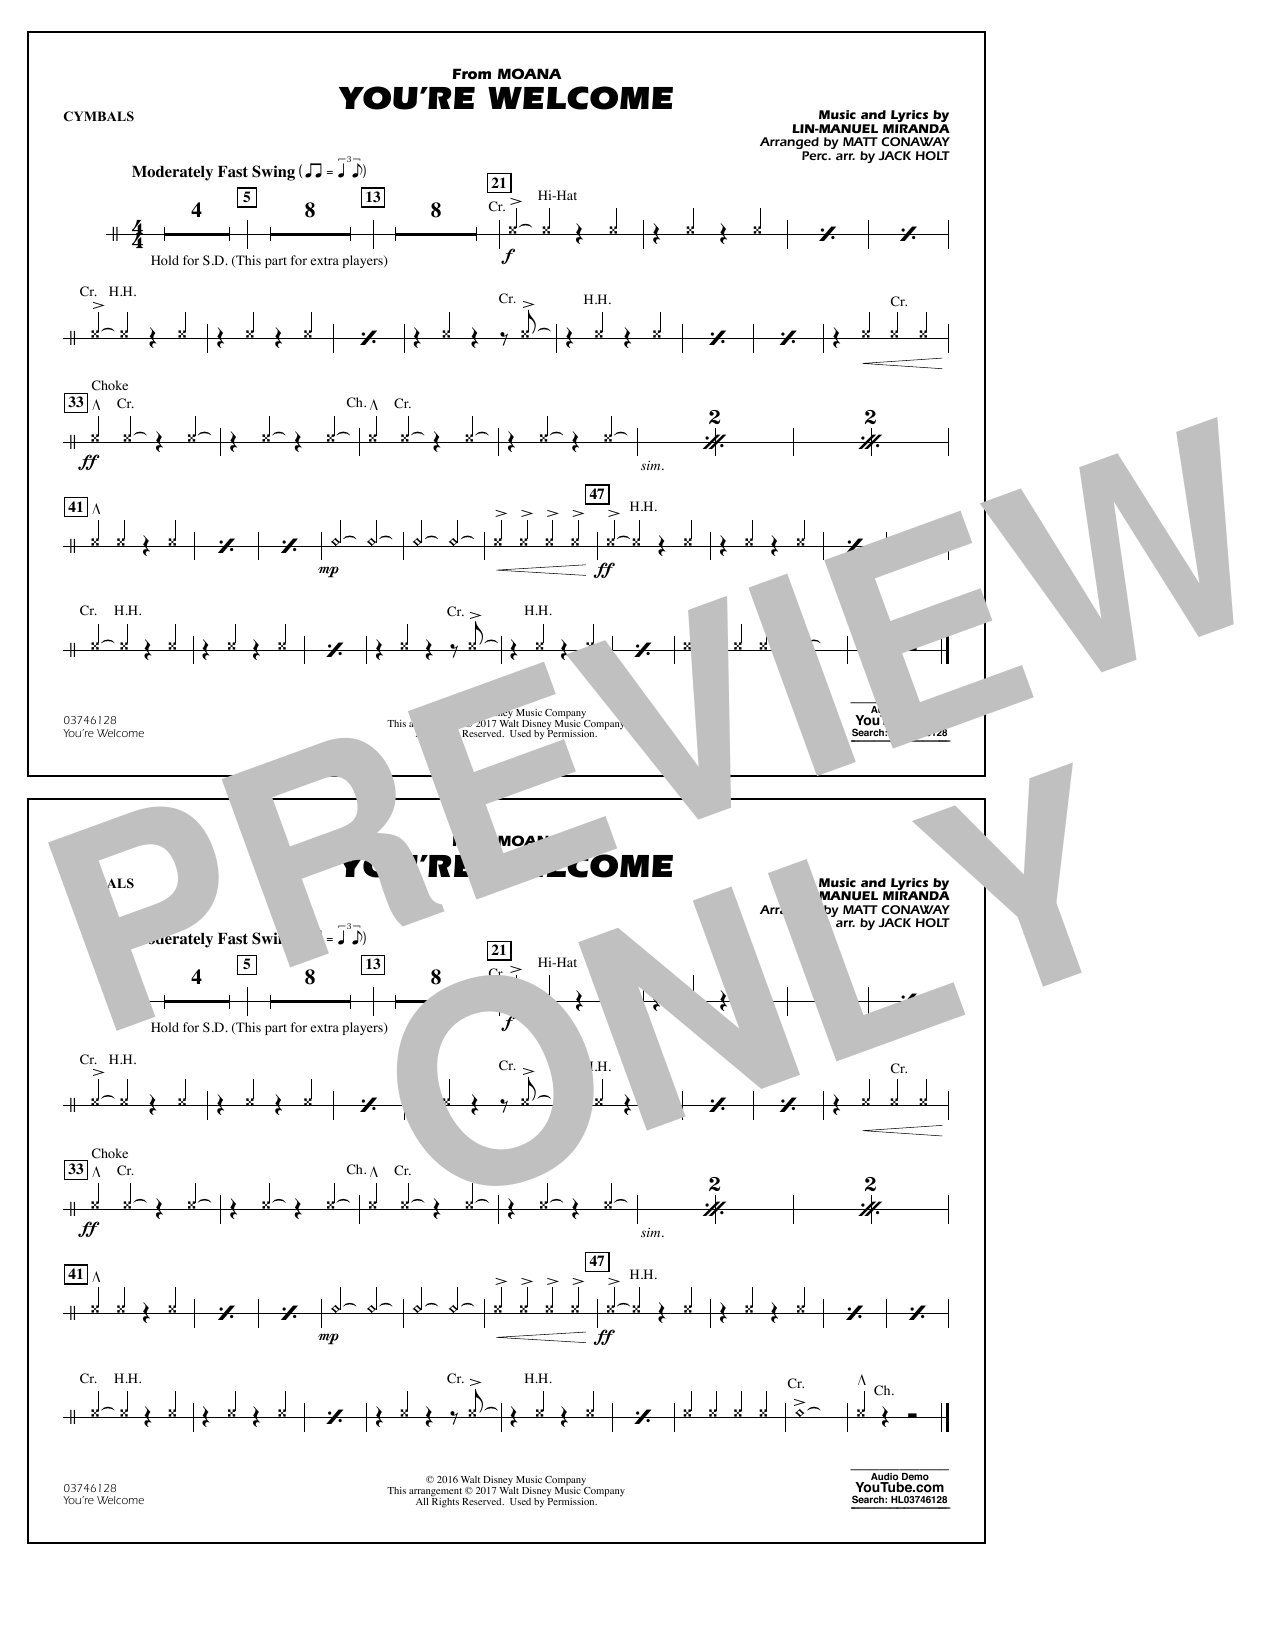 You're Welcome (from Moana) - Cymbals Sheet Music